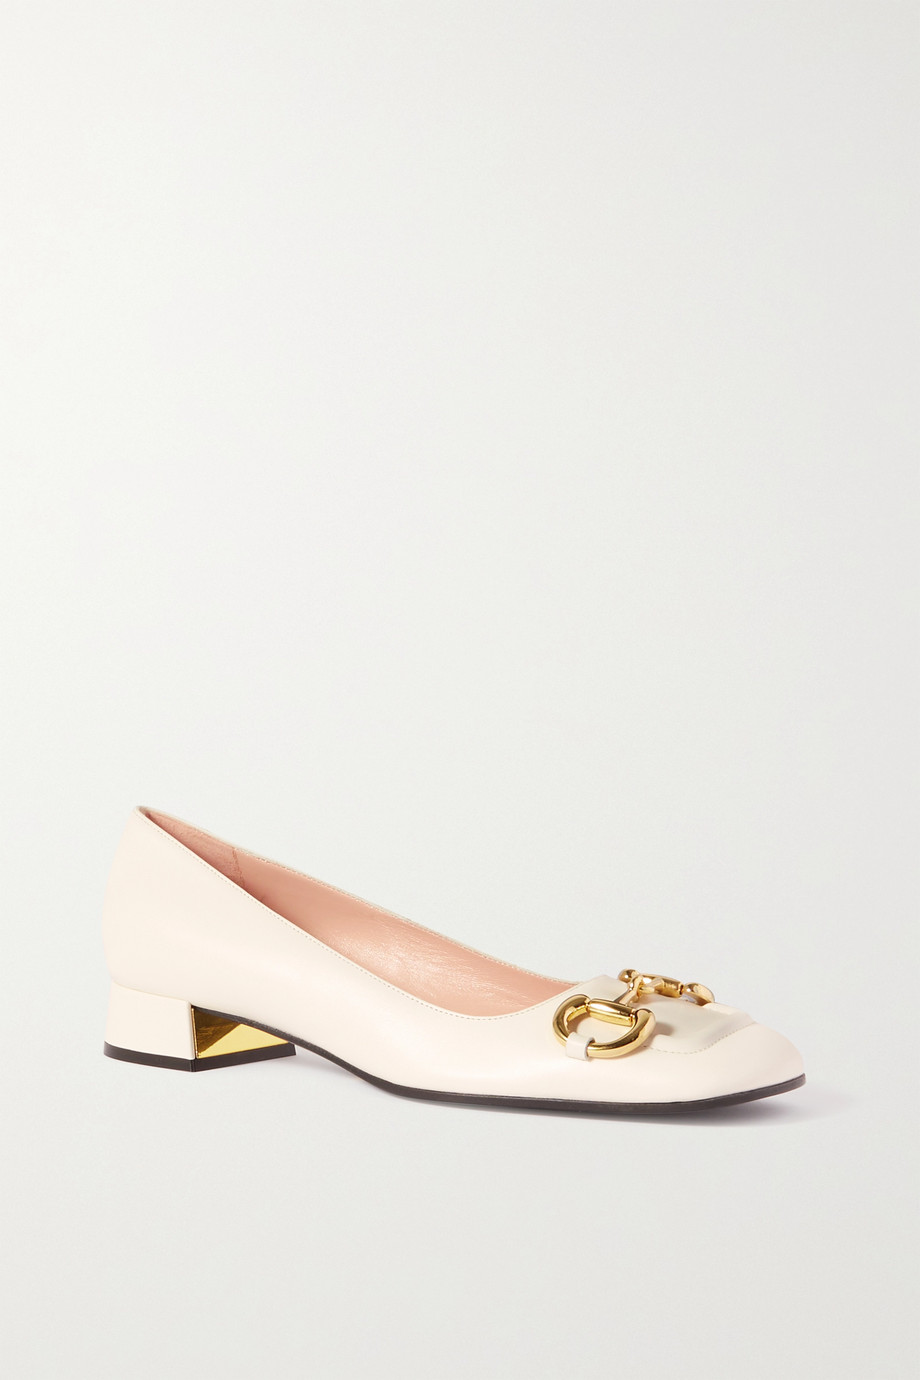 GUCCI Baby horsebit-detailed leather pumps